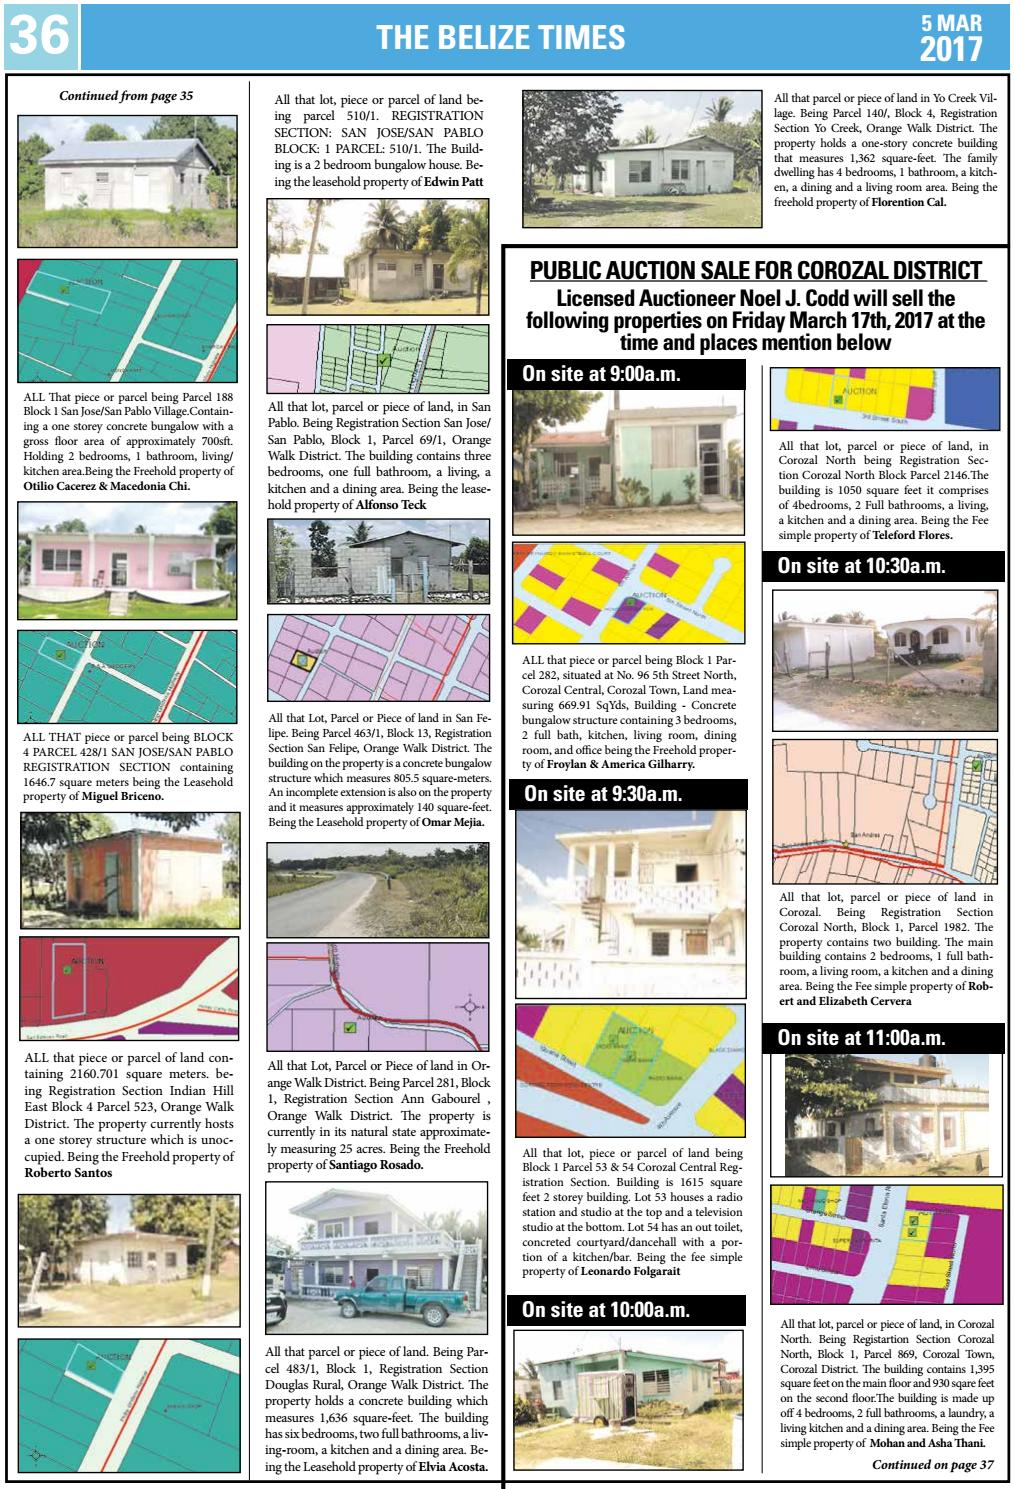 Belize Times March 5 2017 By Belize Times Press Issuu